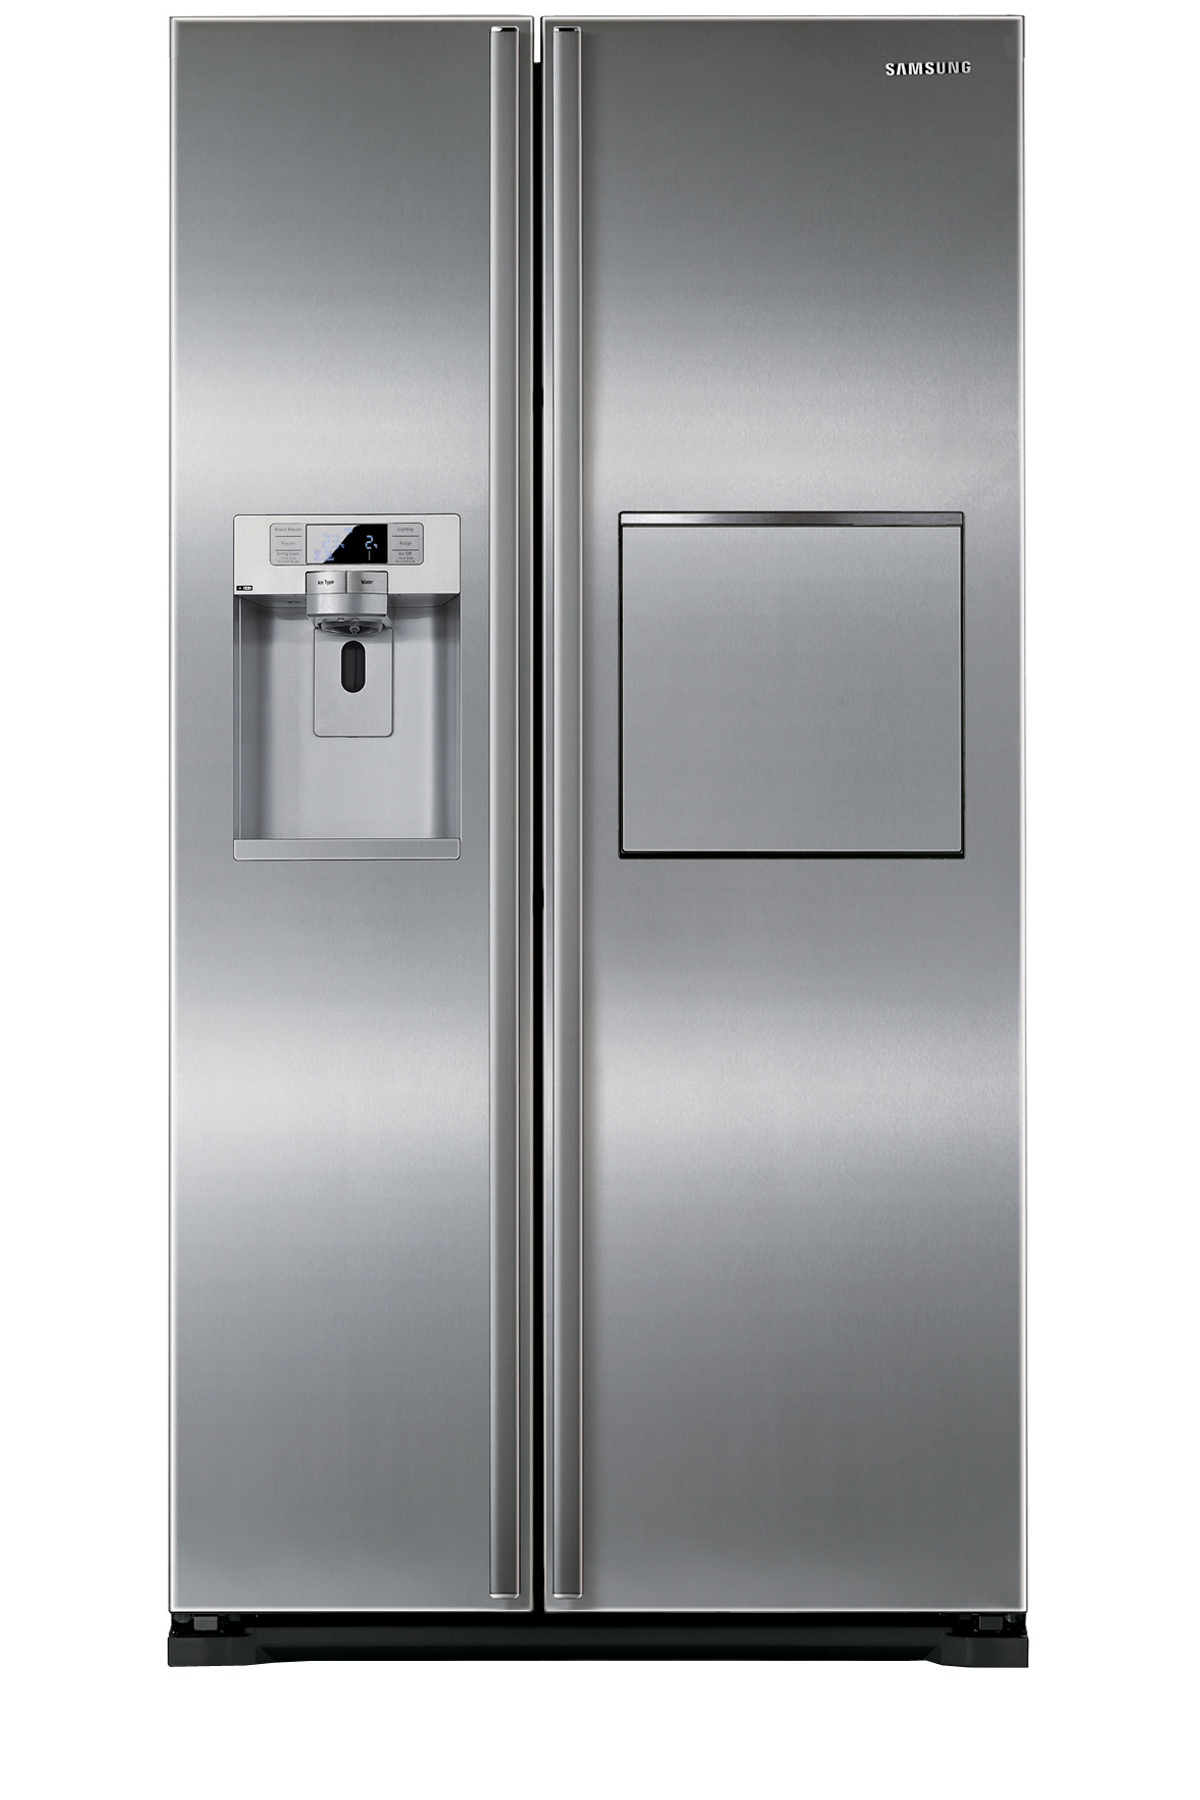 GGH SBS with Water Dispenser, 637 L